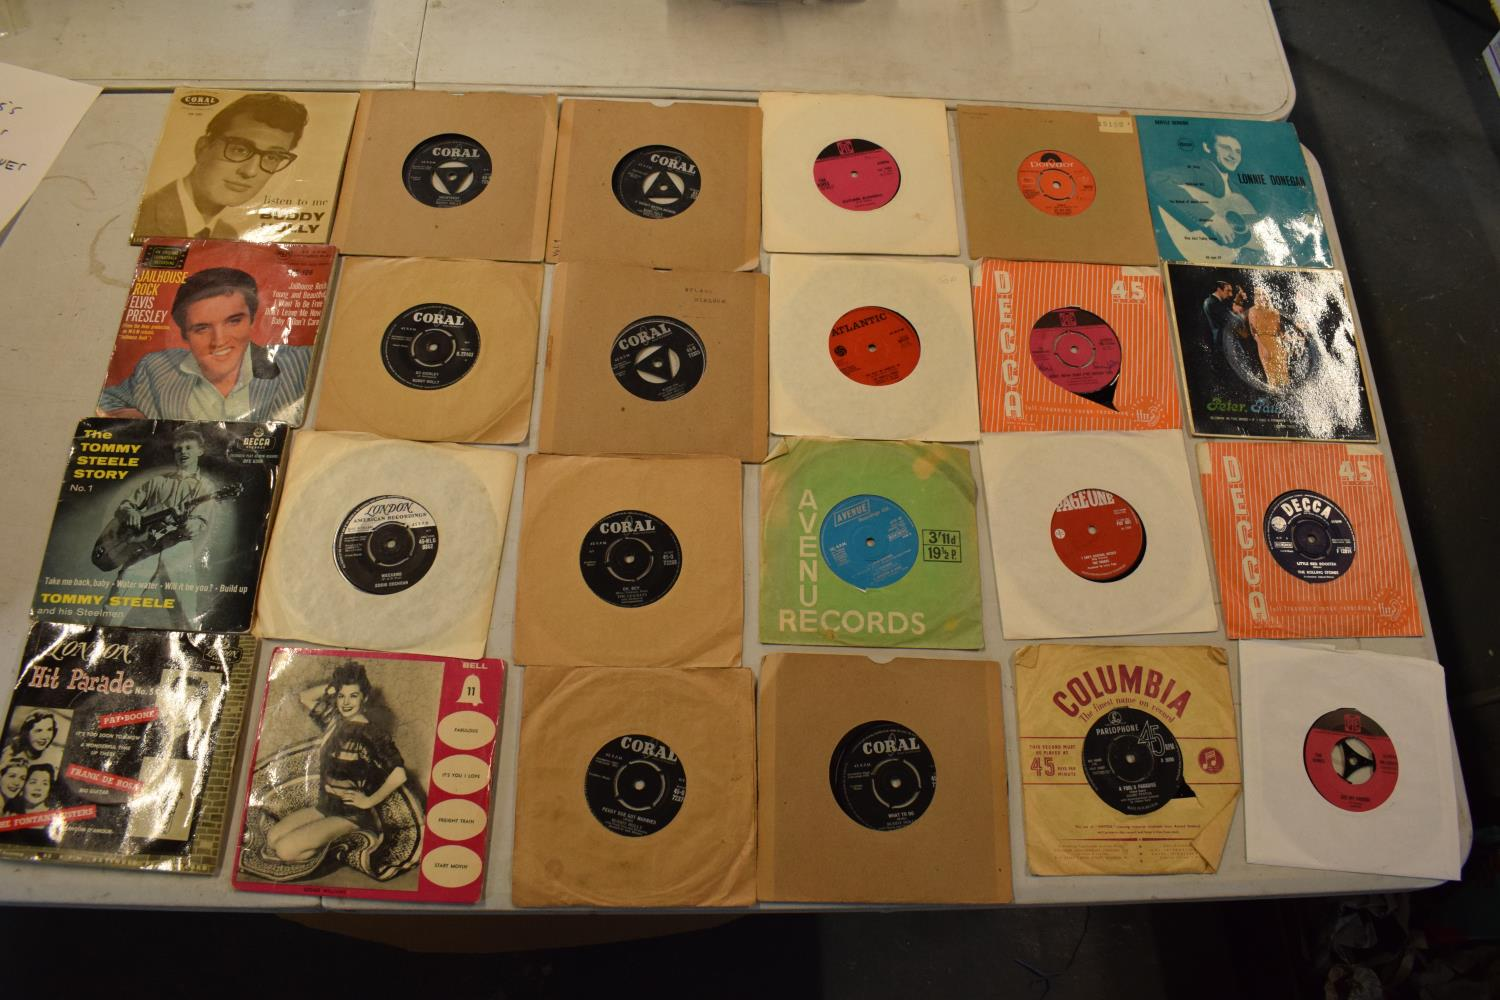 A large collection of 1960s 45s records to include Elvis Presley, Buddy Holly, The Tommy Steele - Image 8 of 8